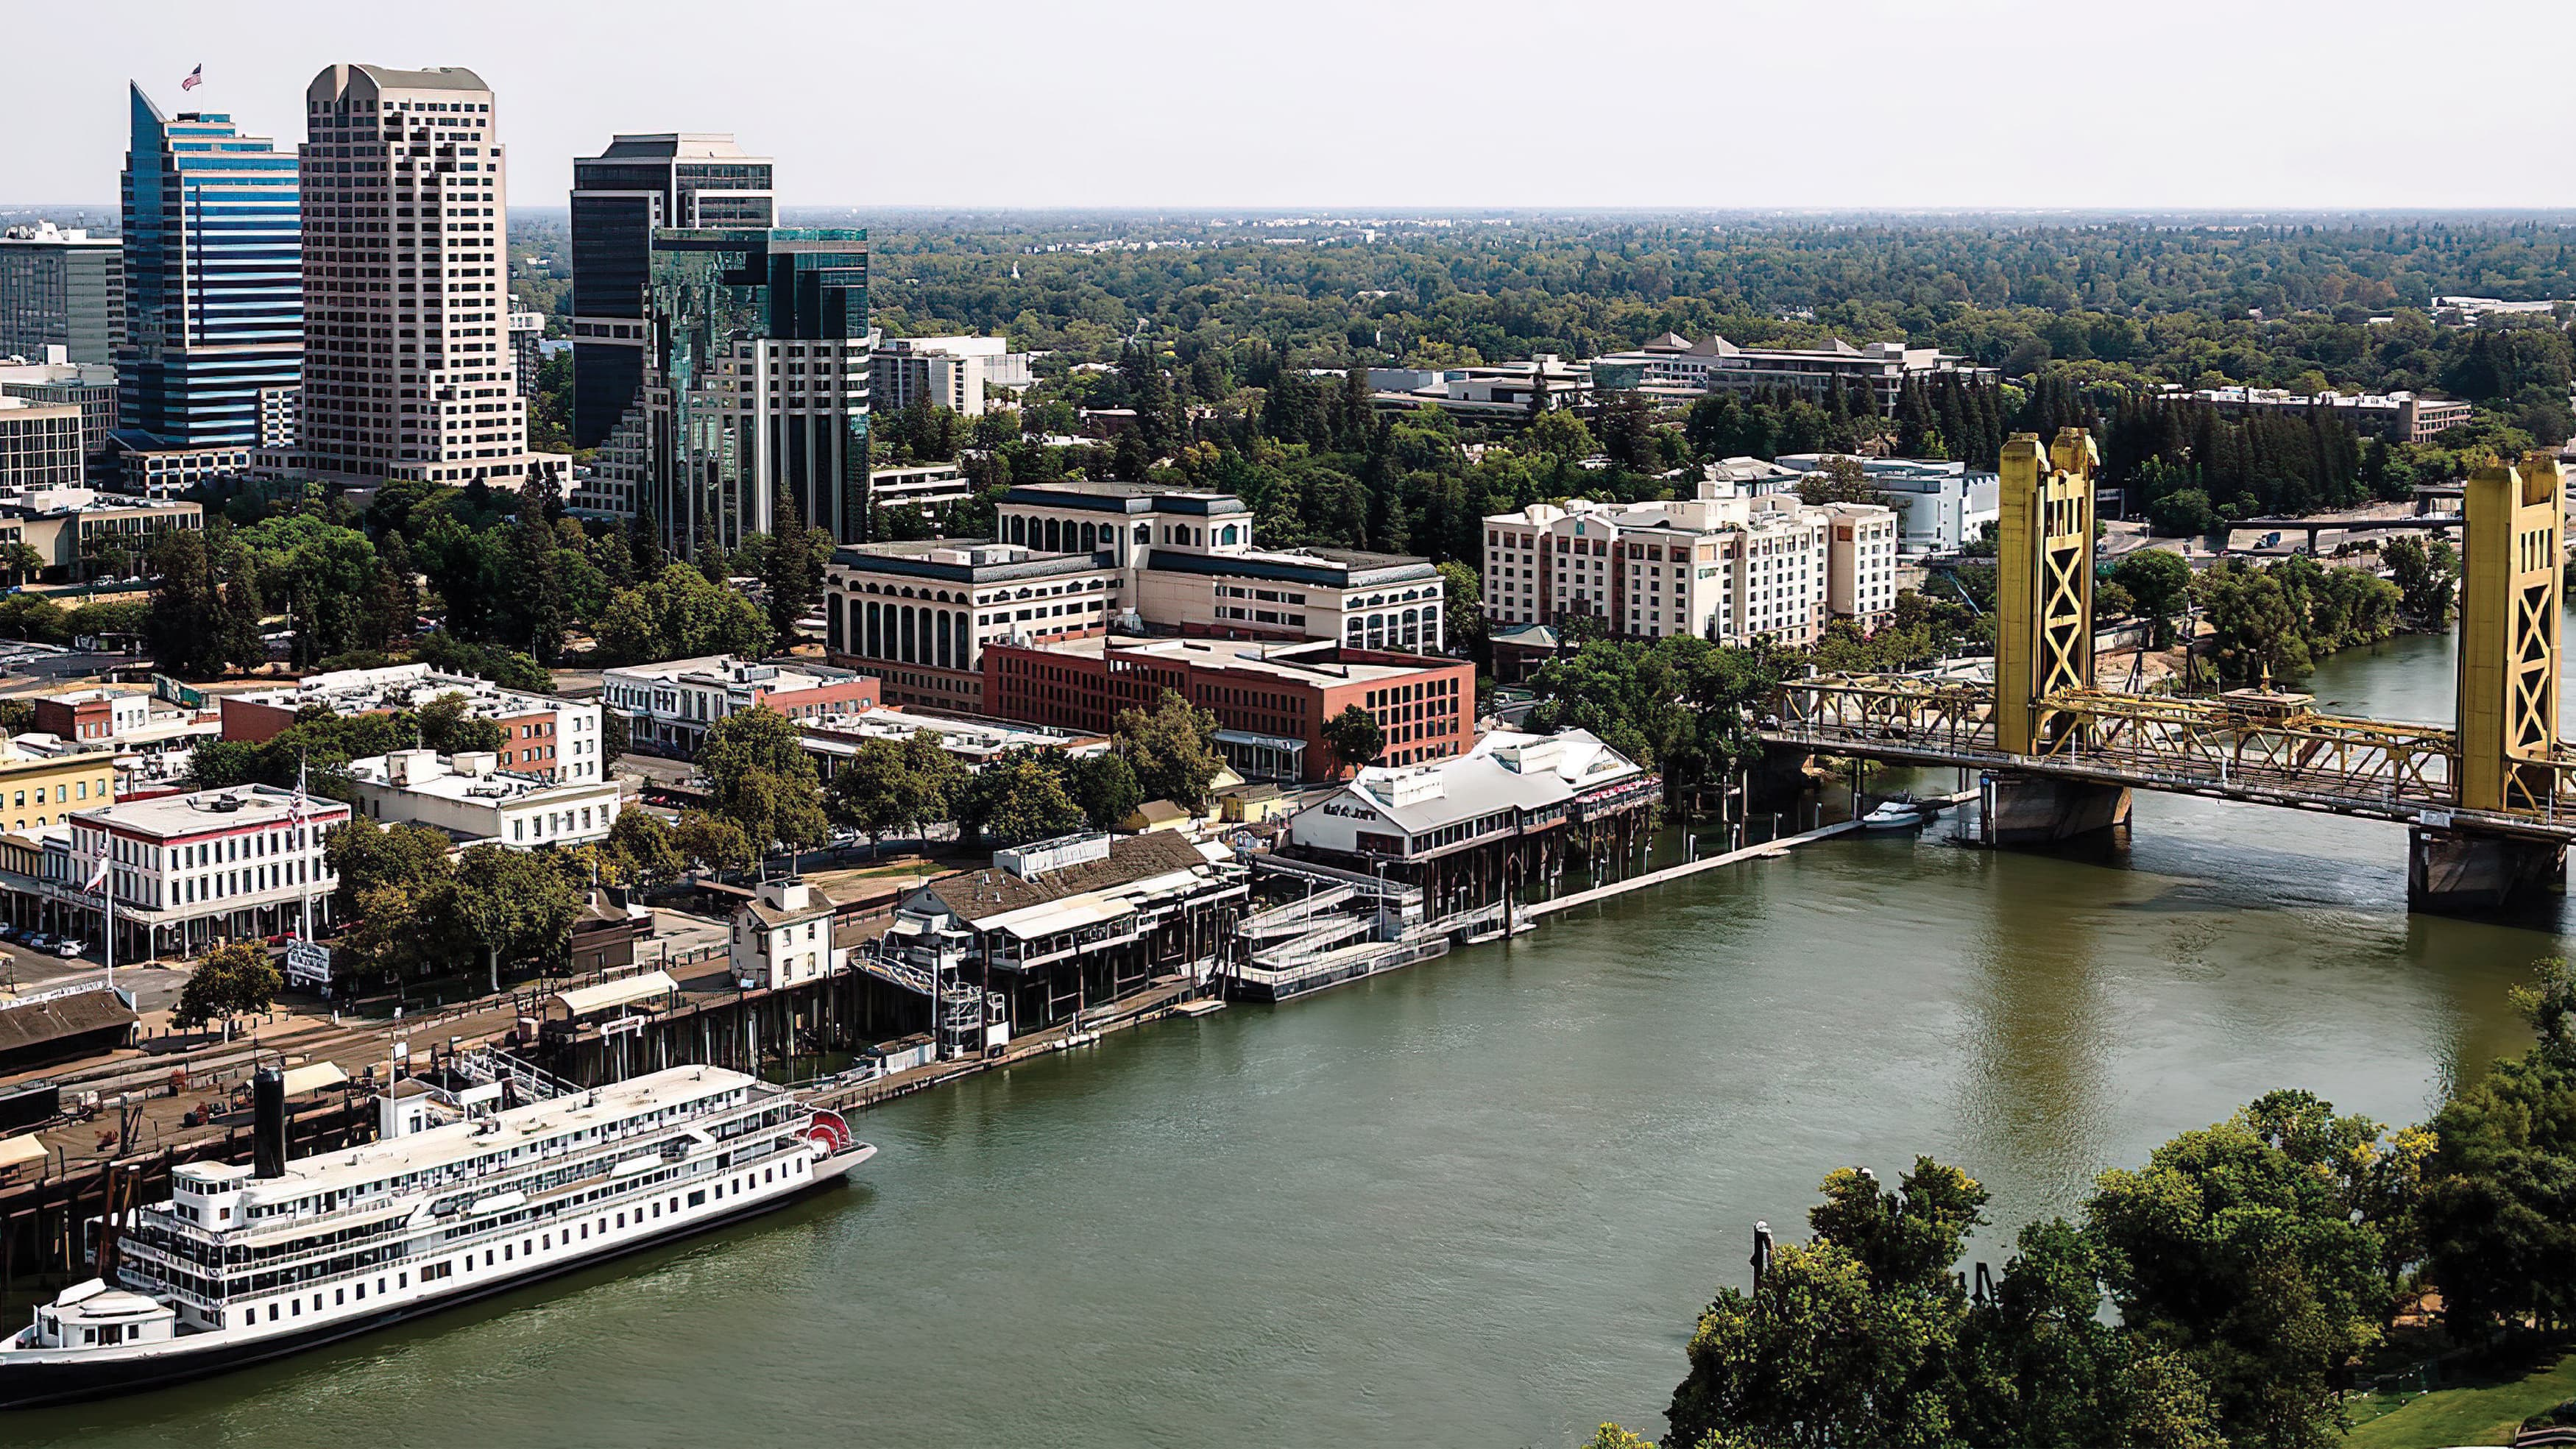 Aerial view of the famed Sacramento waterfront and its golden bridge